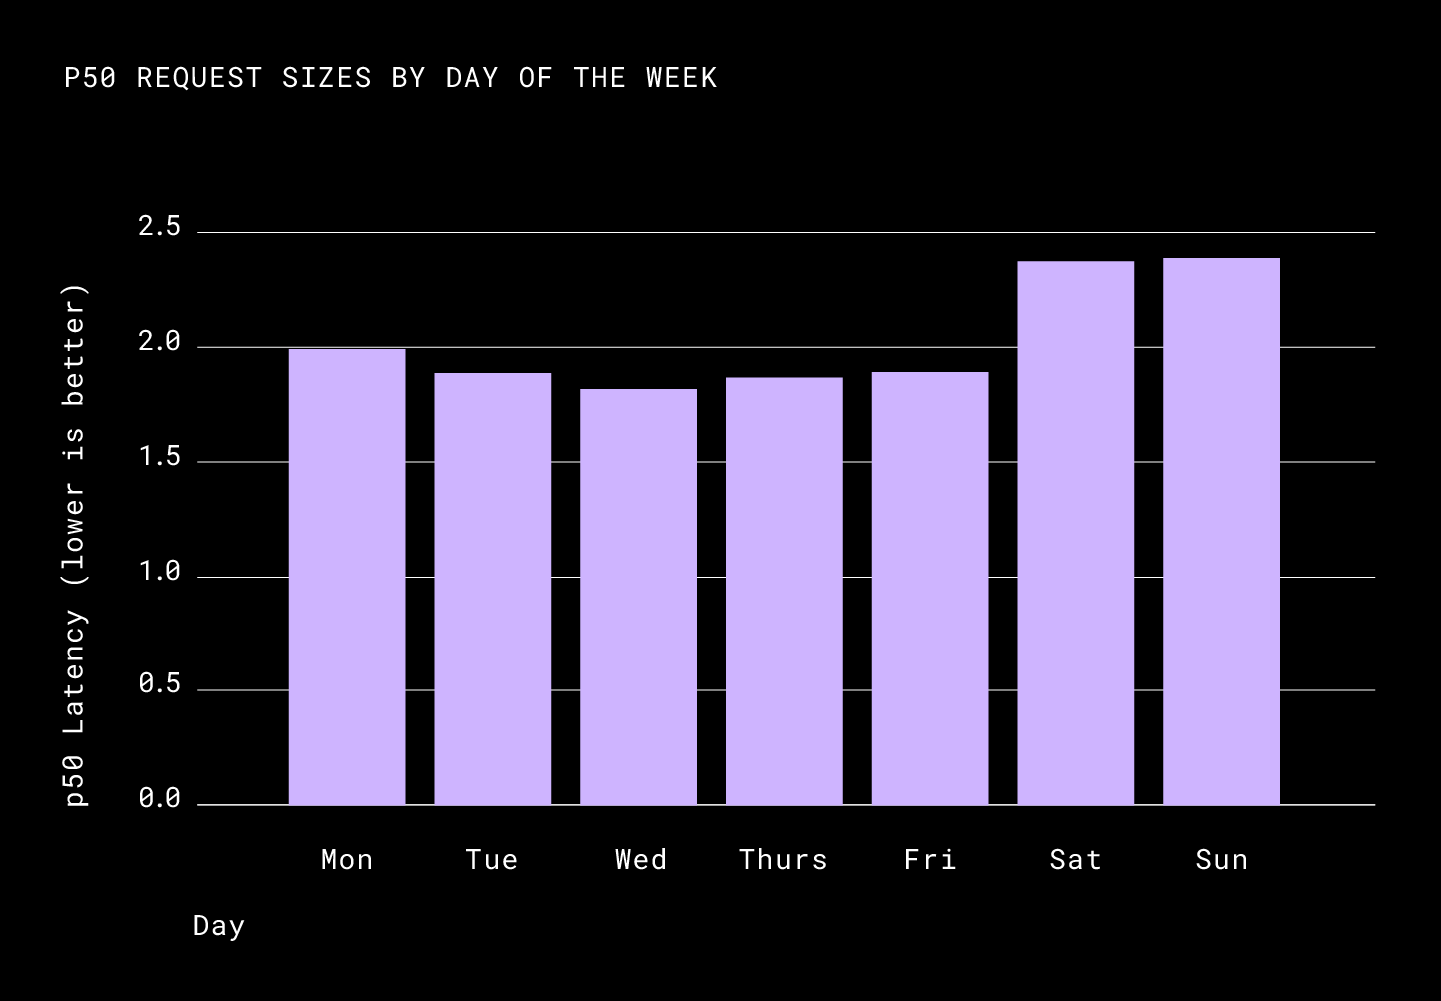 p50 relative latency by day of the week